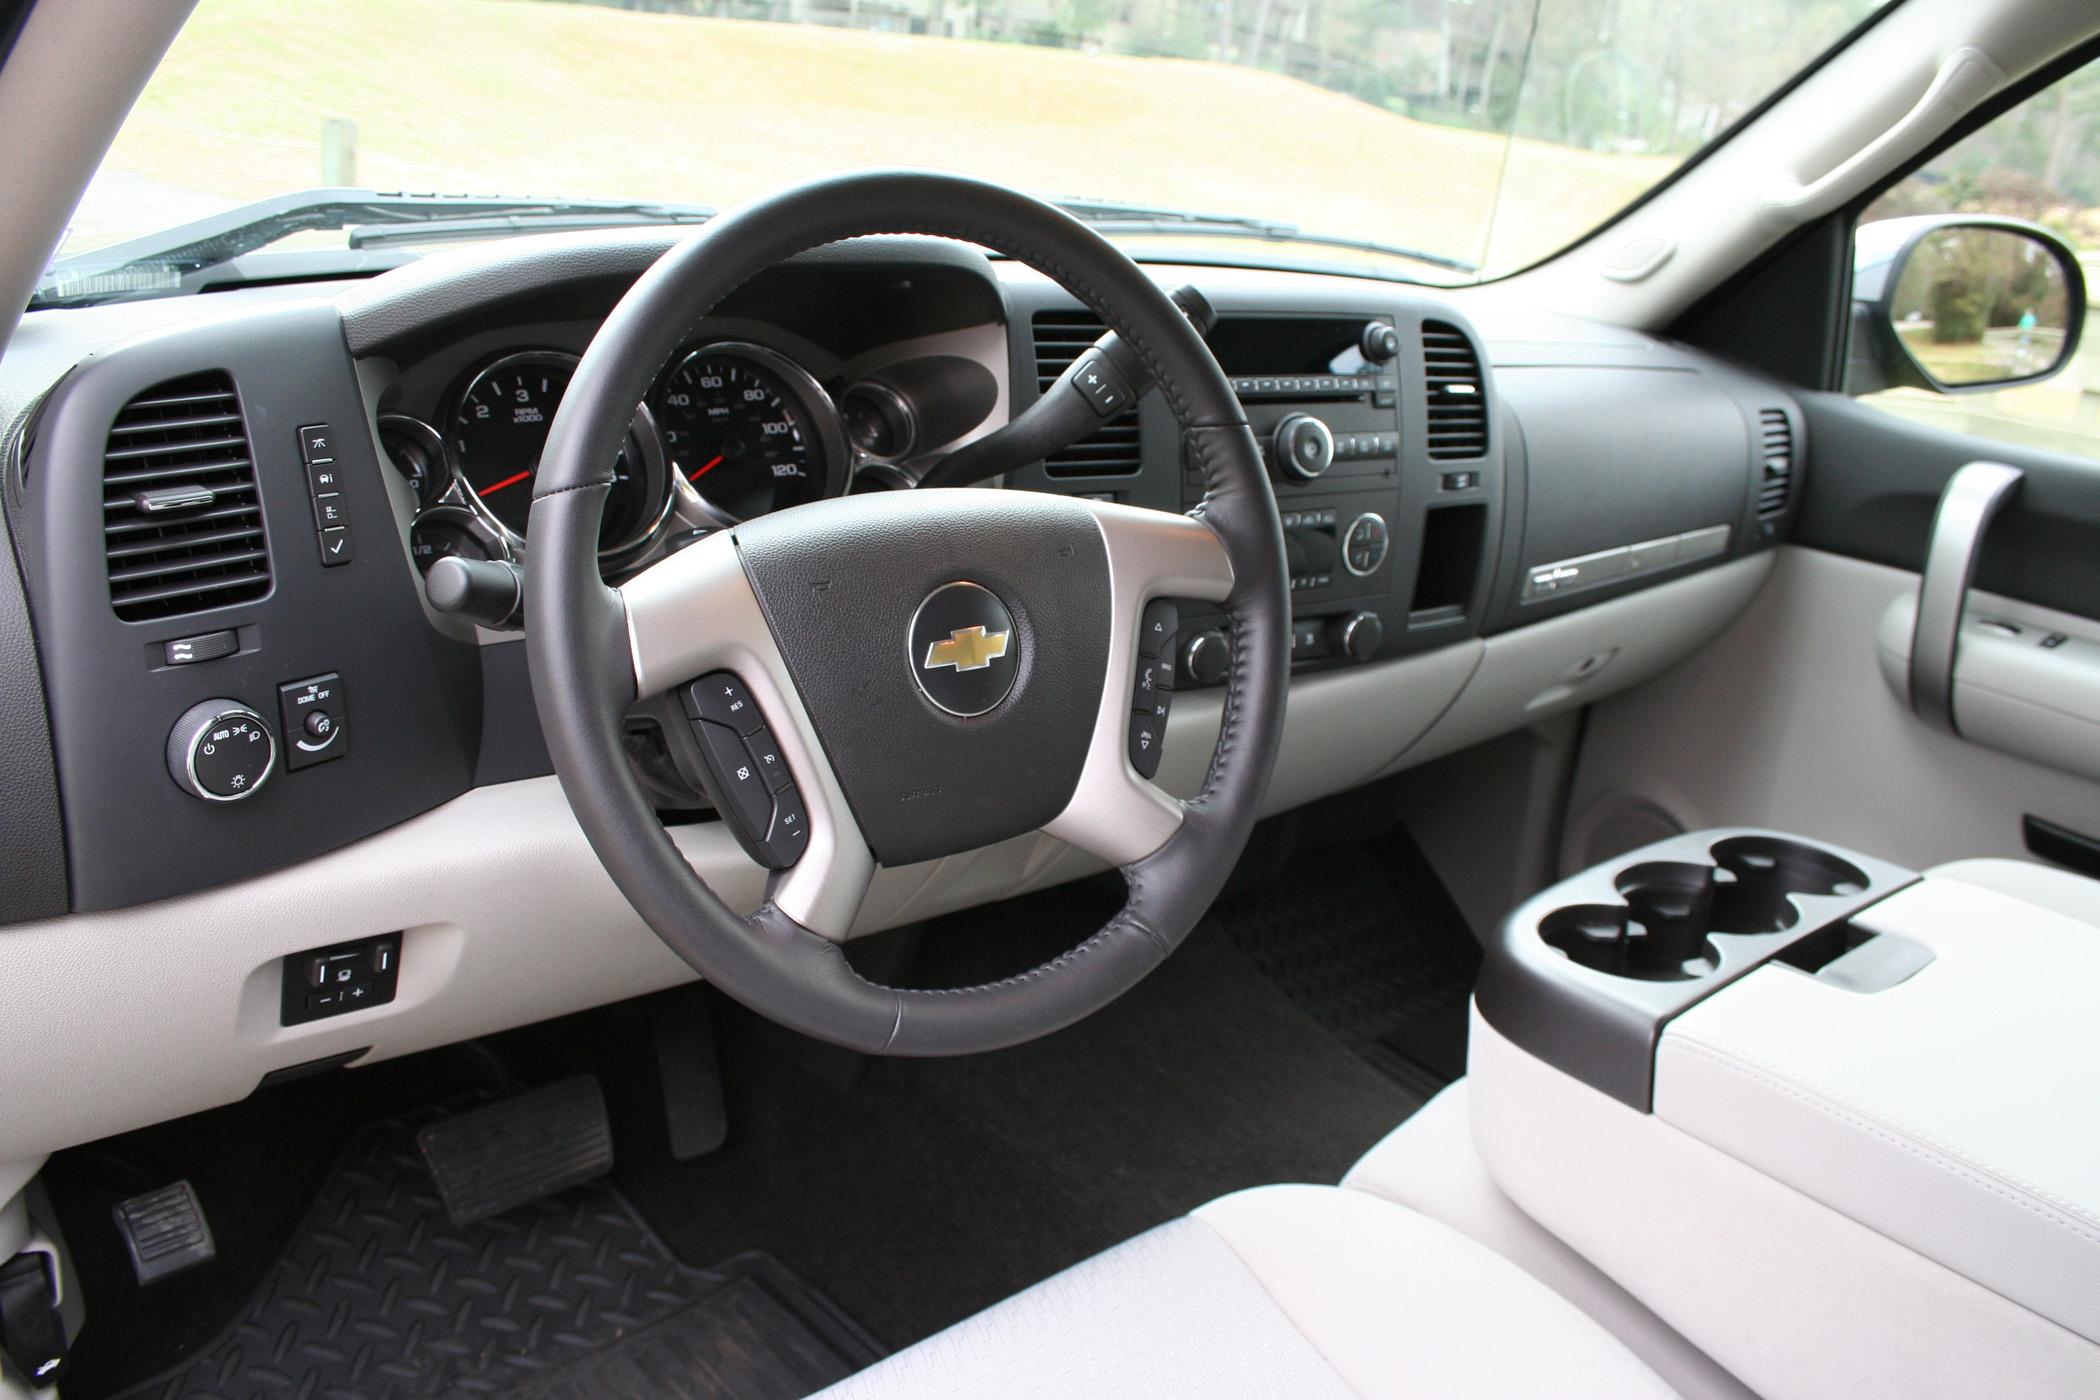 2009 Chevy Silverado gets dressed to go to work - Truck ...